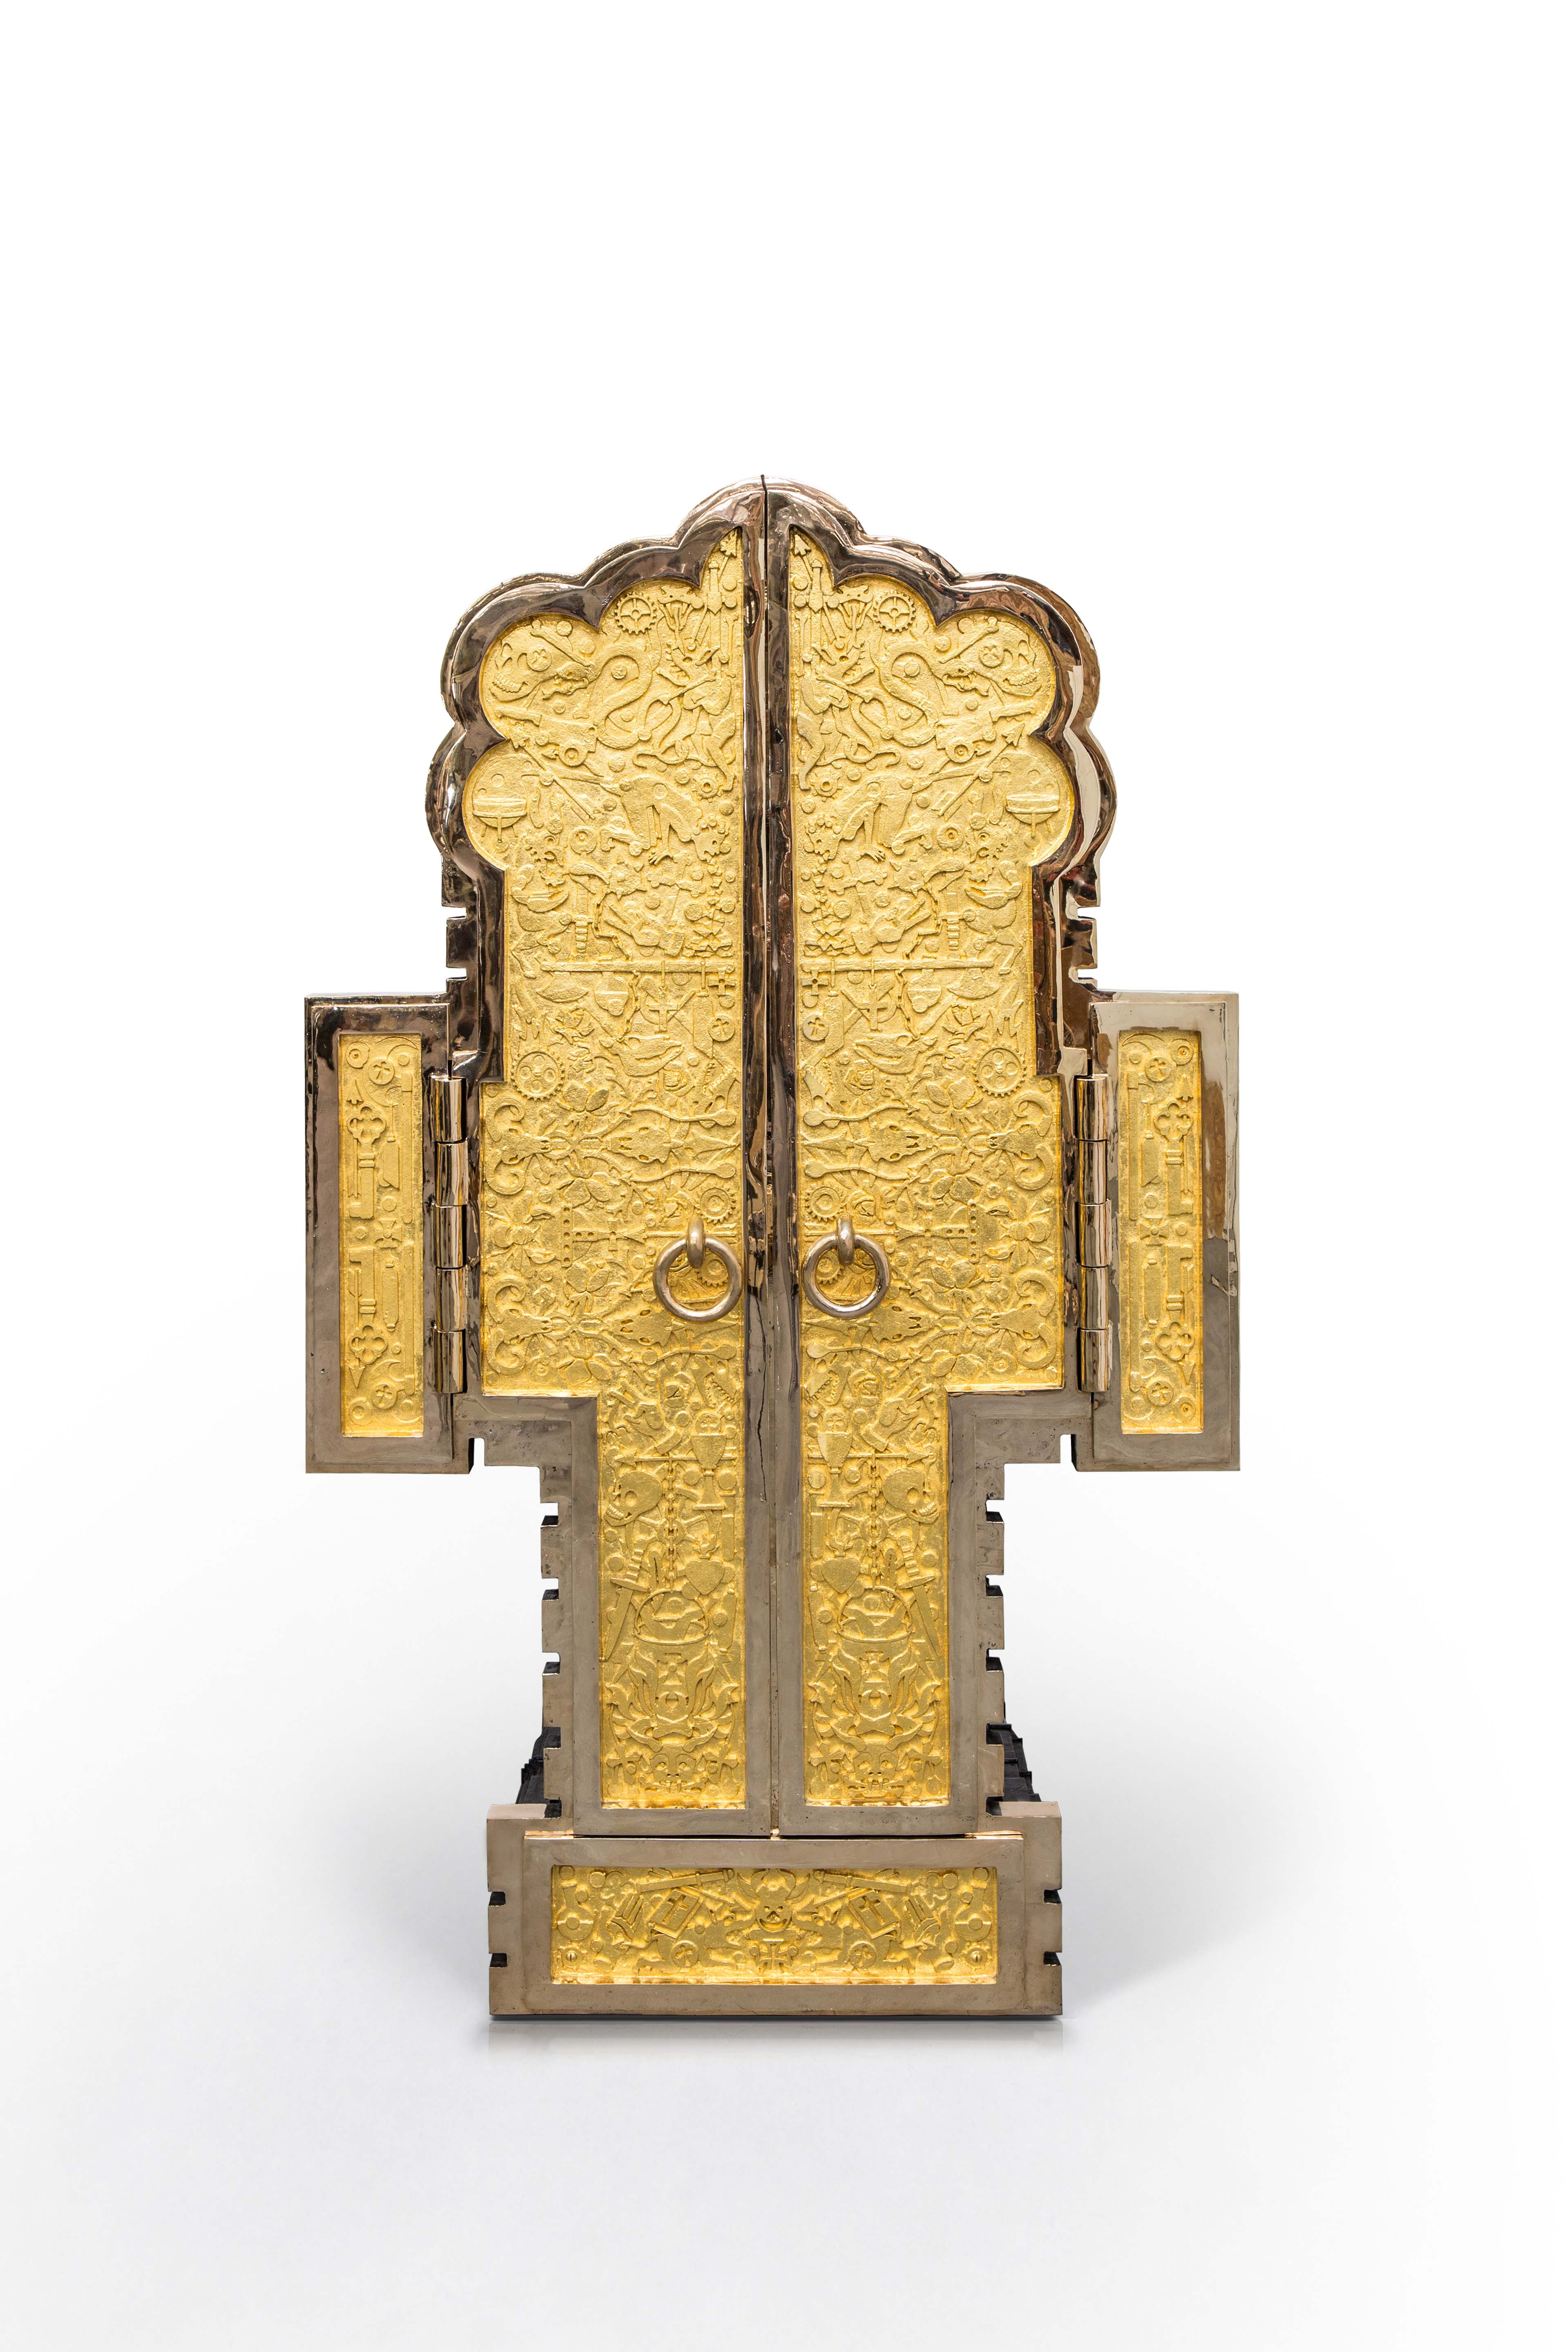 CHARTRES 2009 - 2012 POLISHED AND PATINATED BRONZE, 24K GOLD LEAF H170 L155 W102 CM / H66.9 L61 W40.2 IN LIMITED EDITION OF 5 + 2 AP